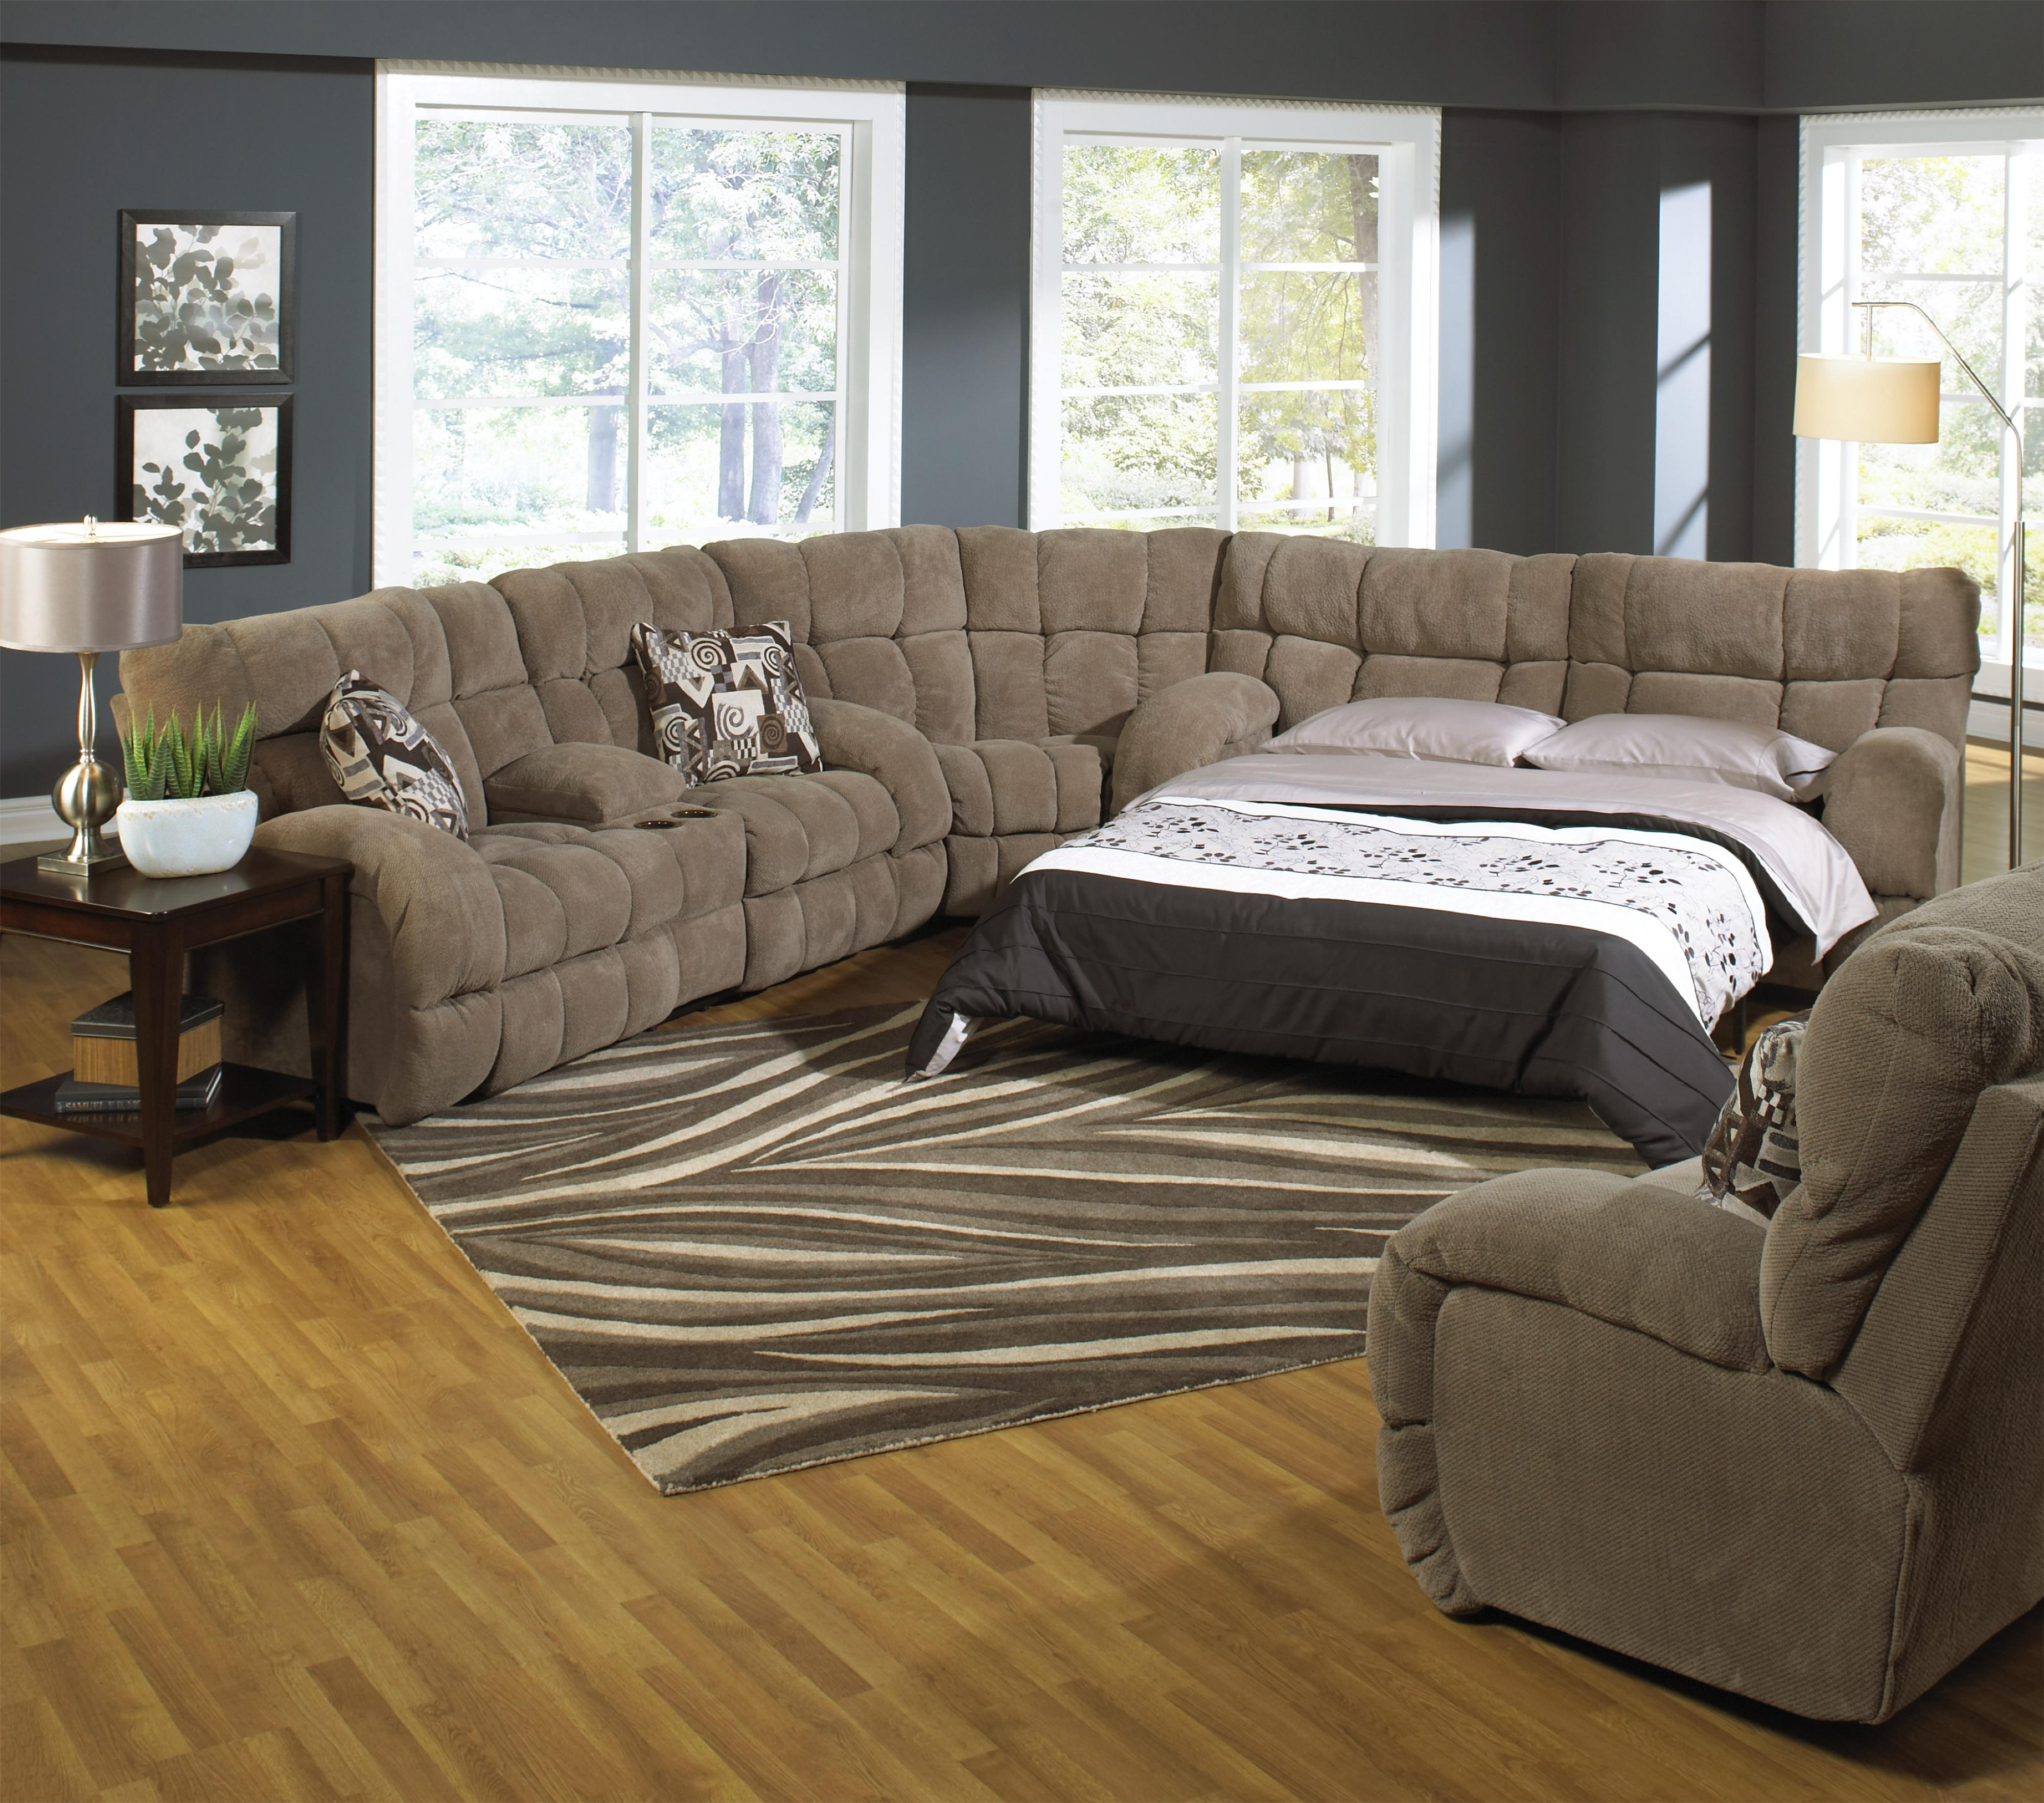 Reclining Sectional Sofa with Sleeper